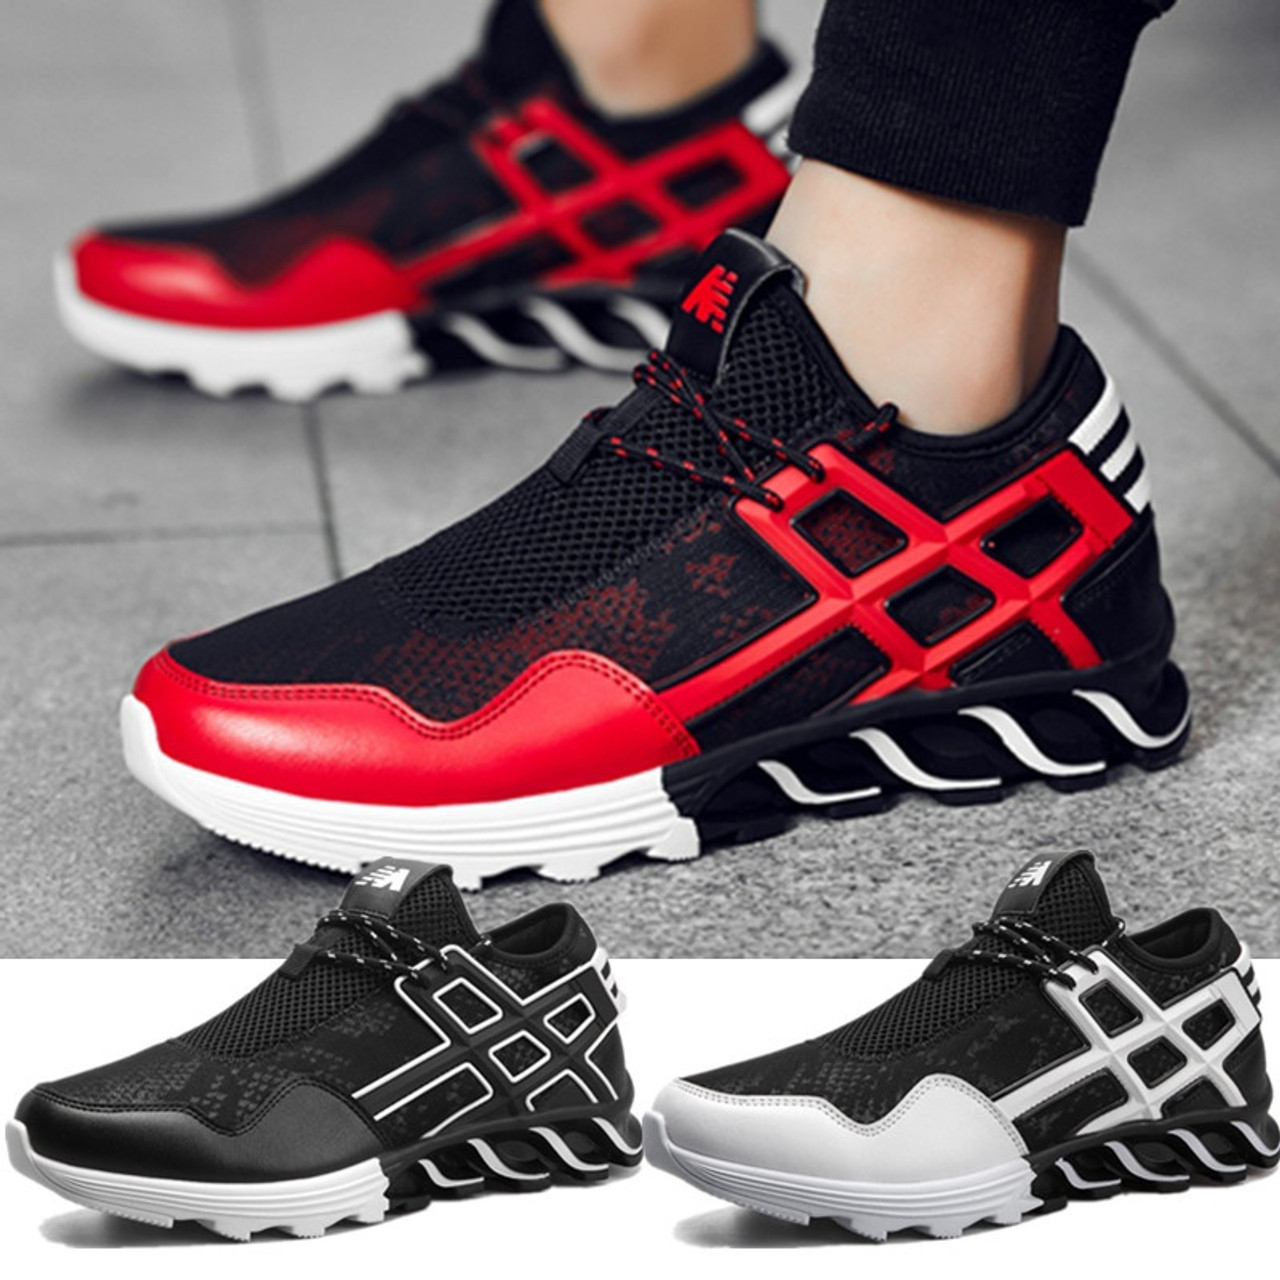 Spring New Net Shoe Man Breathable Cloth Shoes Tide Black Lattice Strap Shoe Men's Shoes Back To Search Resultsshoes